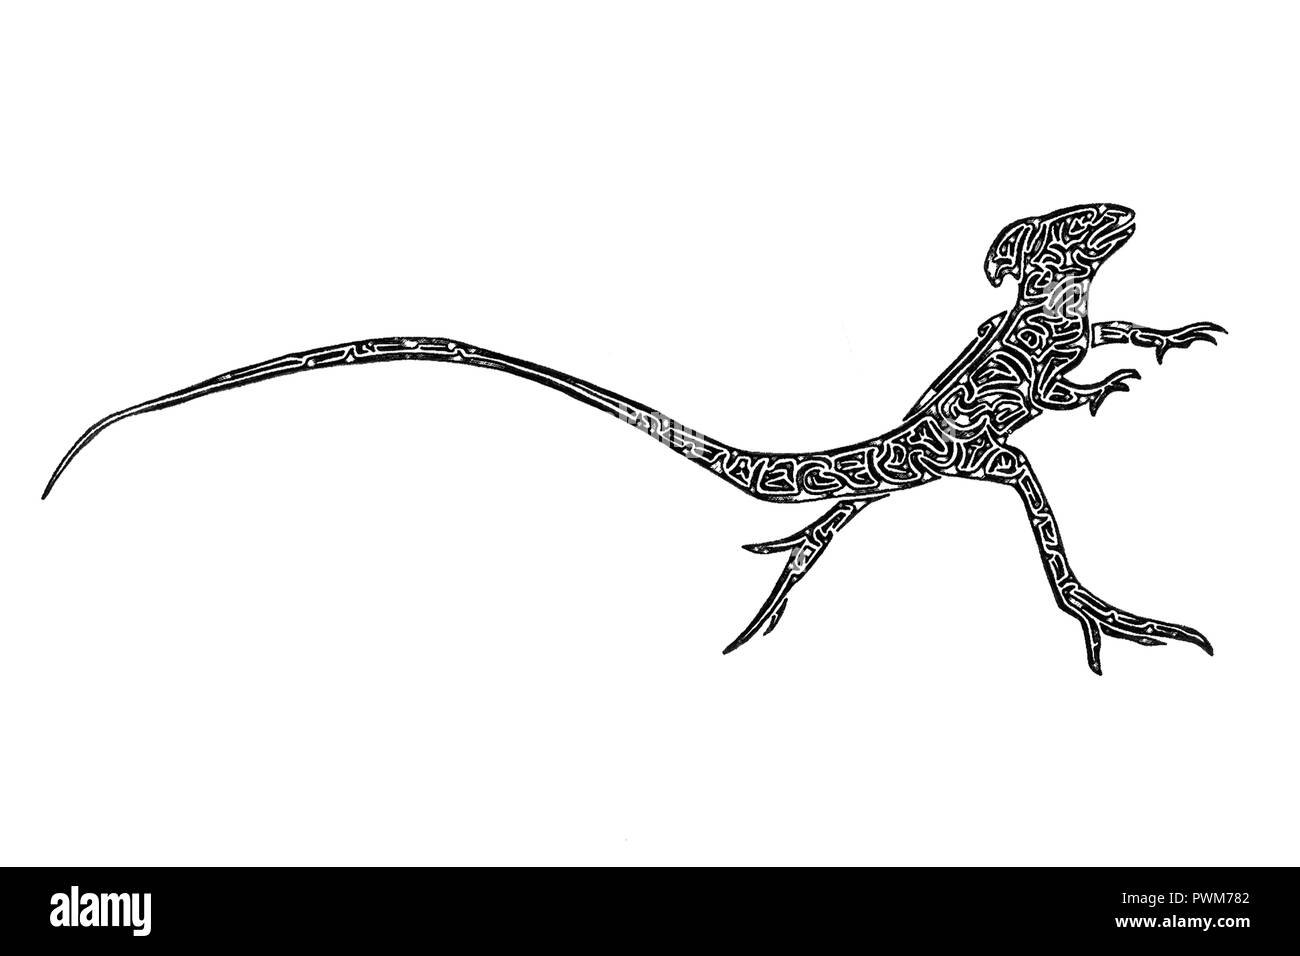 Illustration of a male Plumed basilisk running on 2 legs black and white, drawing Stock Photo